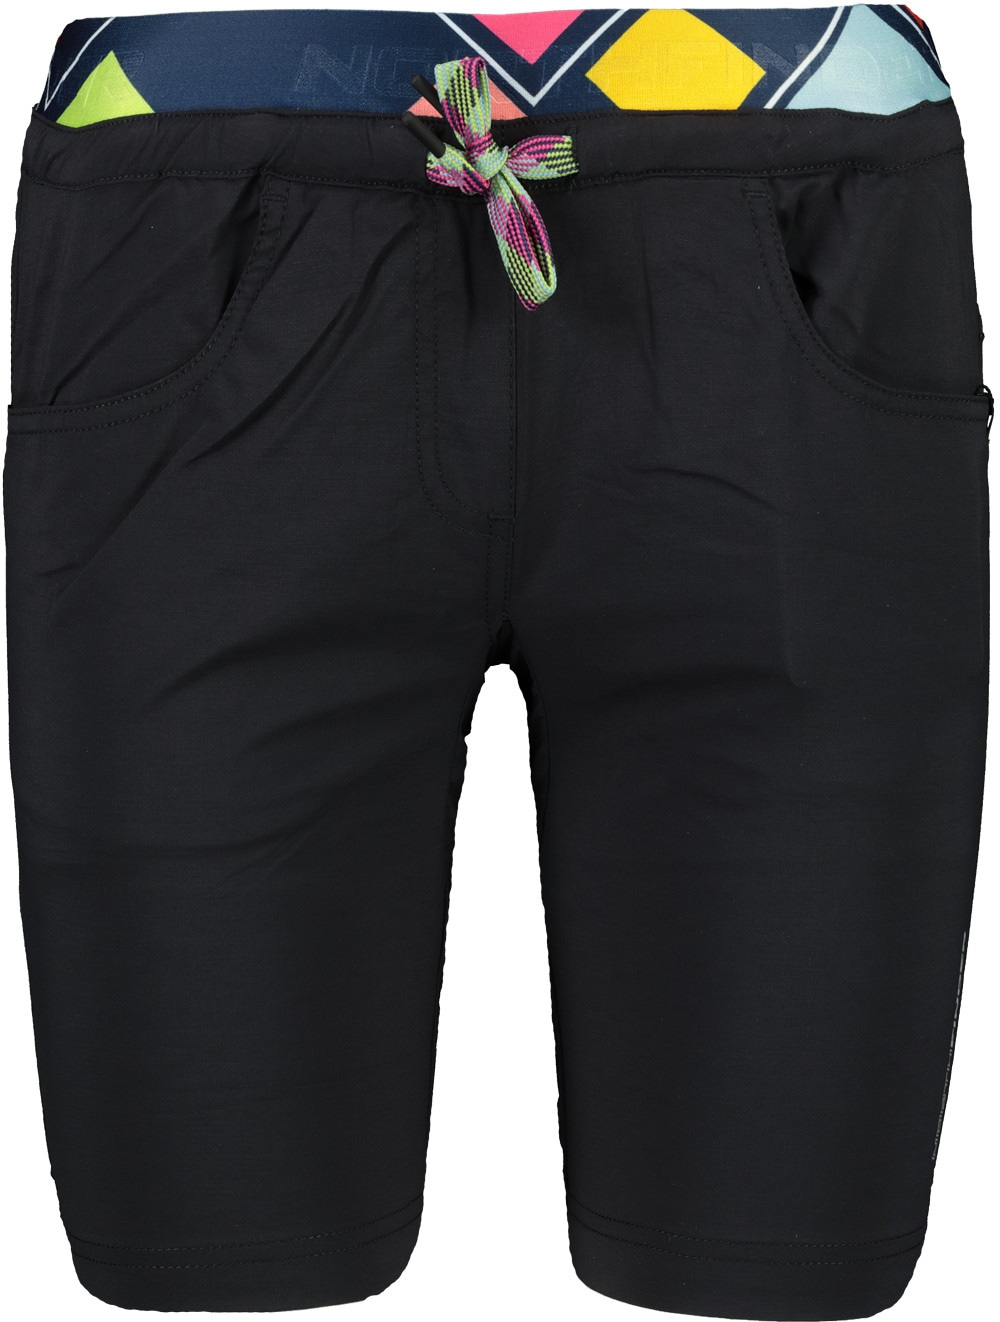 Women's shorts NORTHFINDER KIJA